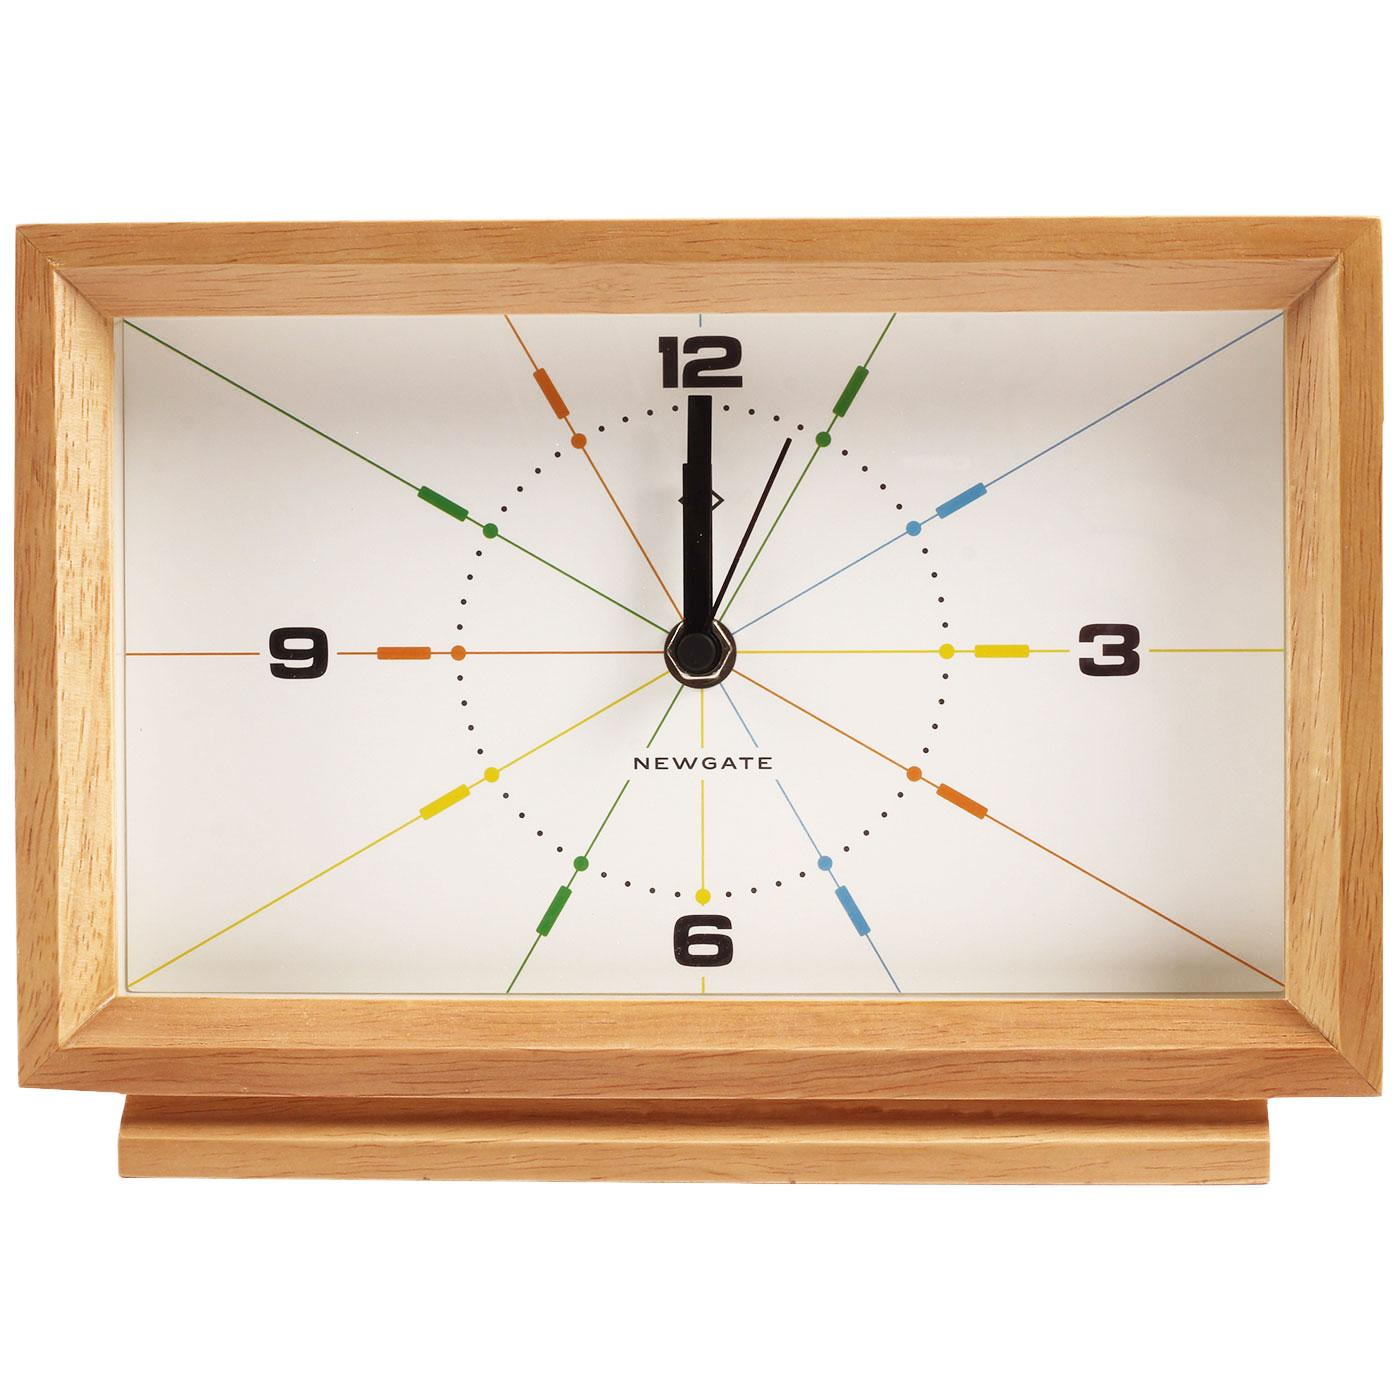 Hollywood Hills NEWGATE Modernist Mantel Clock